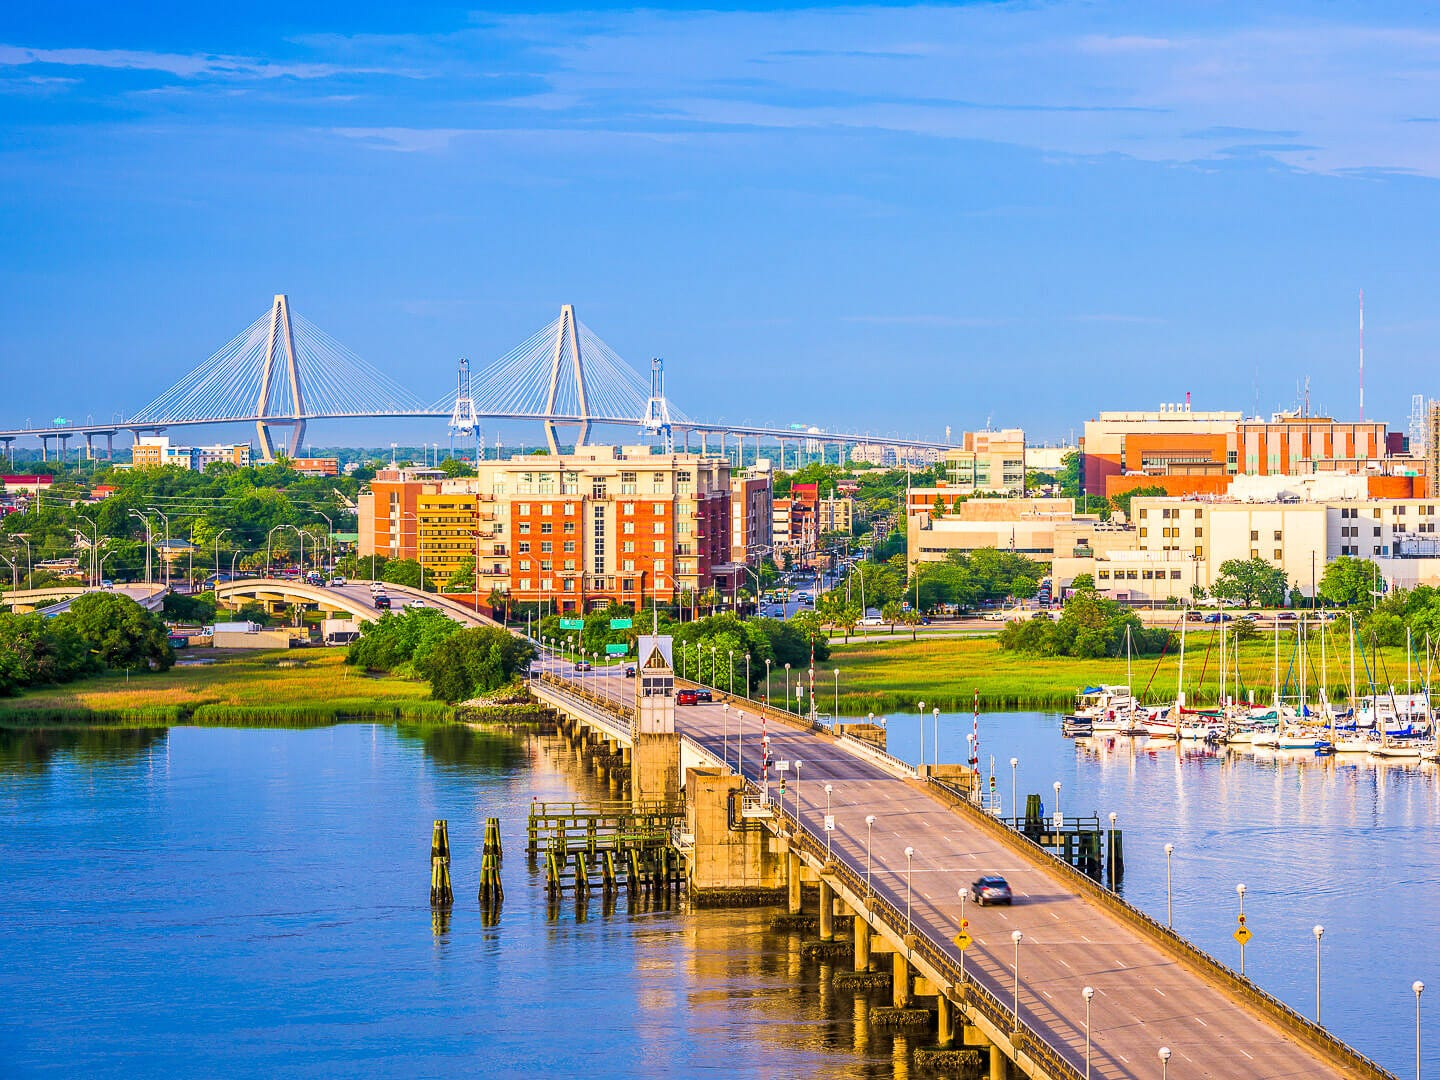 No. 5: Charleston, South Carolina. Thanksgiving trip cost: $1,520.50. Christmas trip cost: $1,862. During Thanksgiving, hotels in Charleston cost the second-most on average compared to the other destinations in this study. And during Christmas, it has the fifth-most expensive hotels on average. You'll probably spend a lot of money when you get there, too, because Charleston is one of the best places to shop in America.